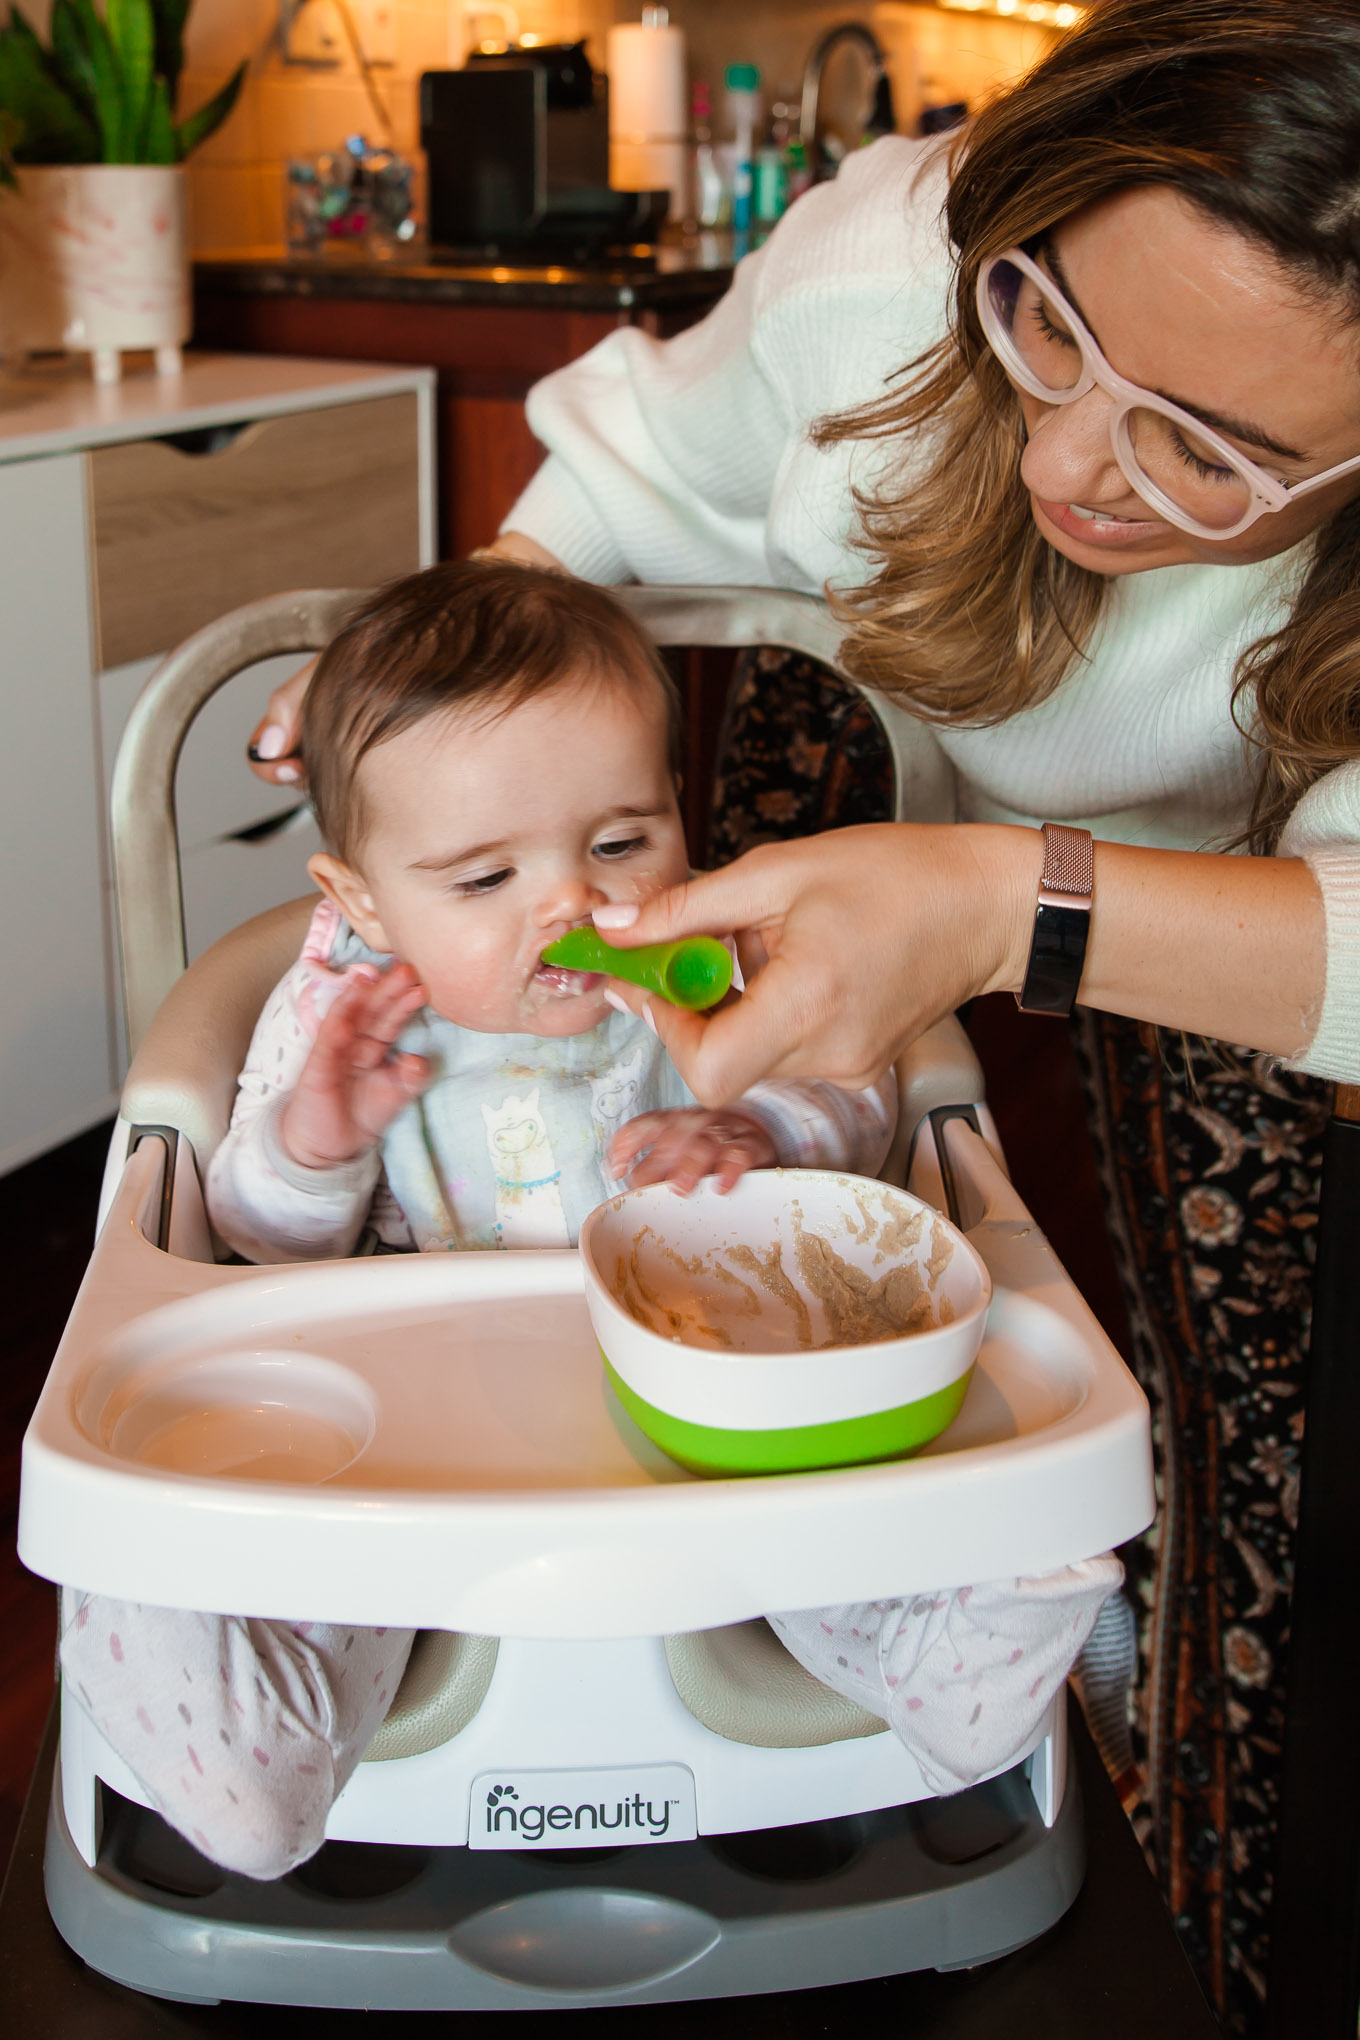 Ingenuity Baby Seat by popular Chicago mommy blog, Glass of Glam: image of a baby sitting in a Ingenuity baby seat and being fed food by her mom.